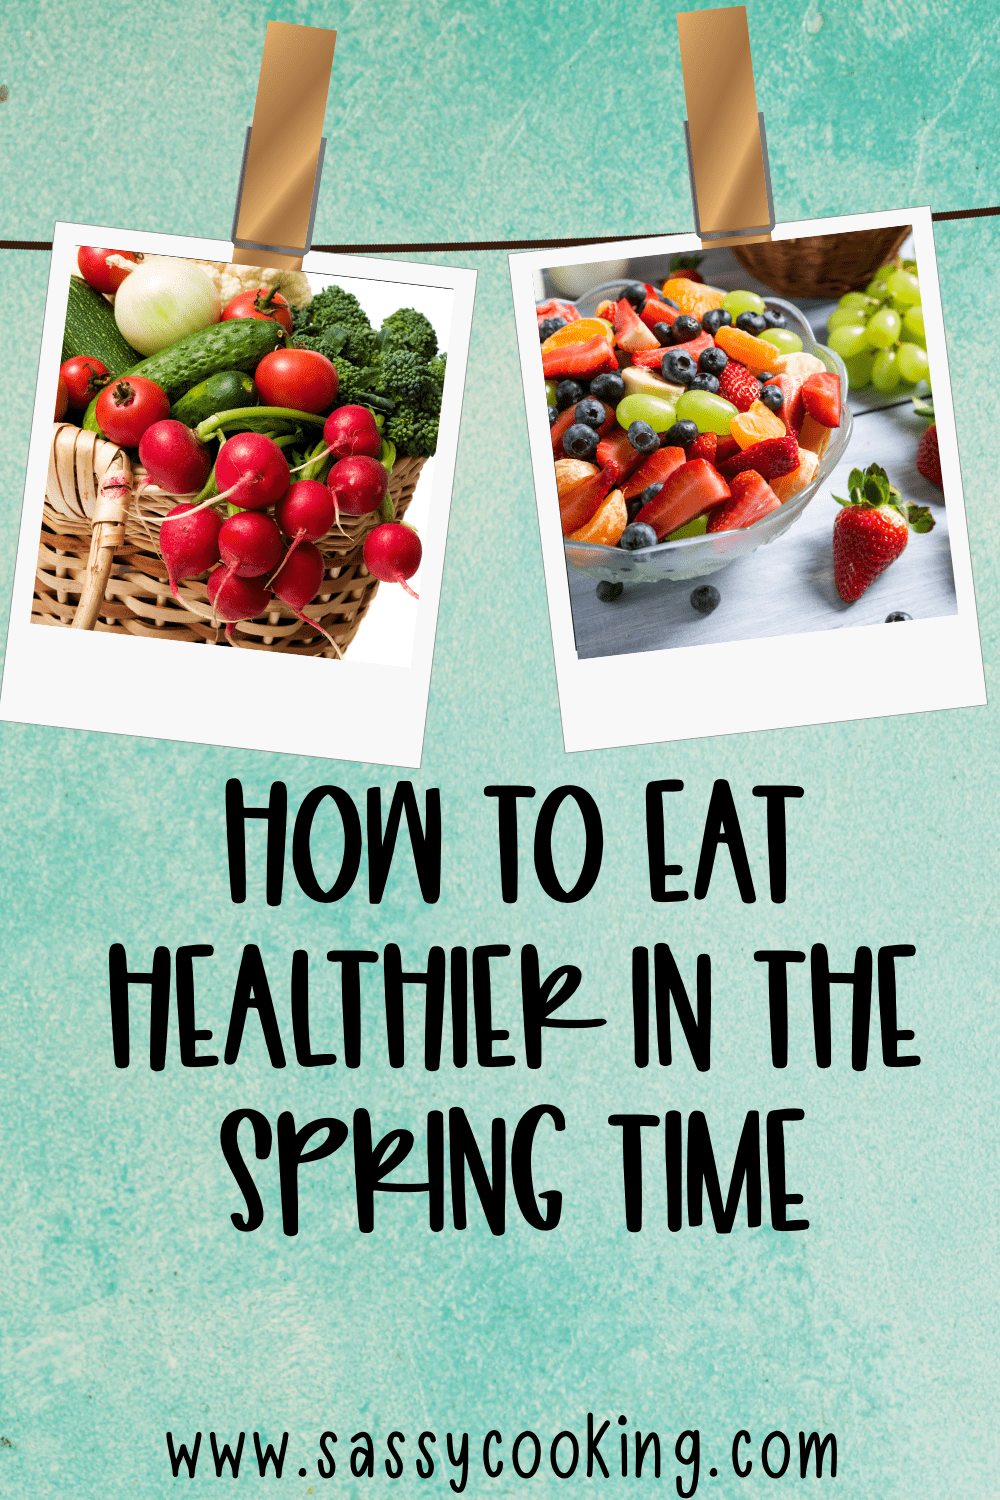 How To Eat Healthier This Spring